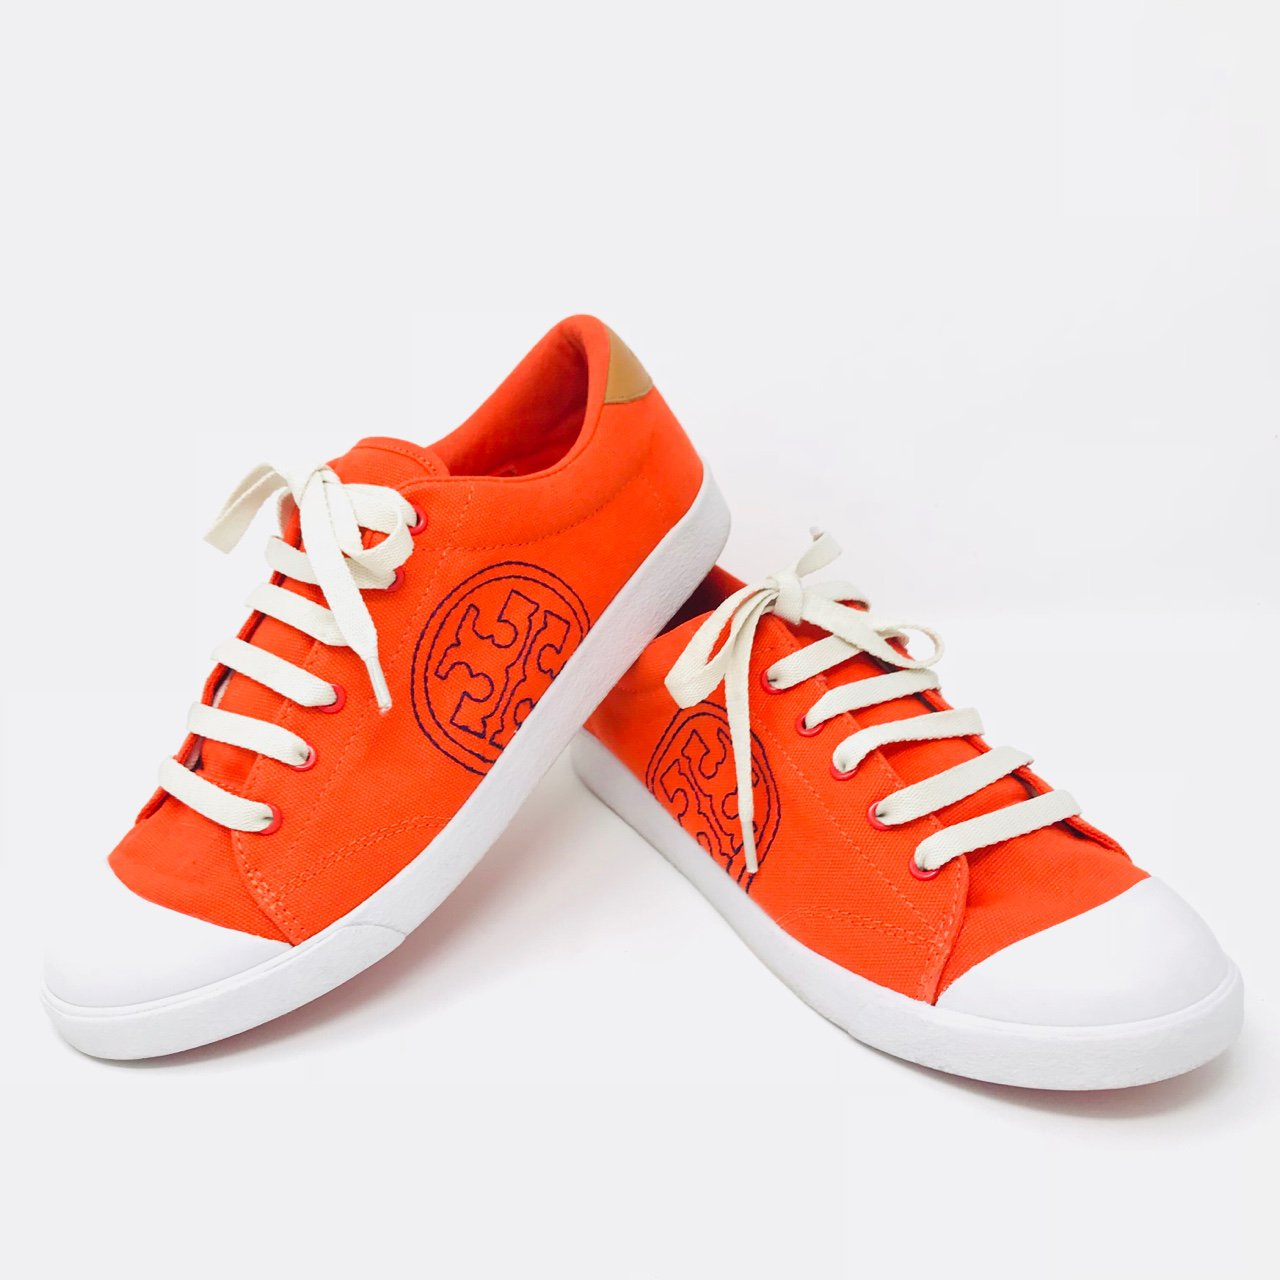 88f867087aec58 Gorgeous Orange Tory Burch sneakers. Shoes are in great pre - Depop